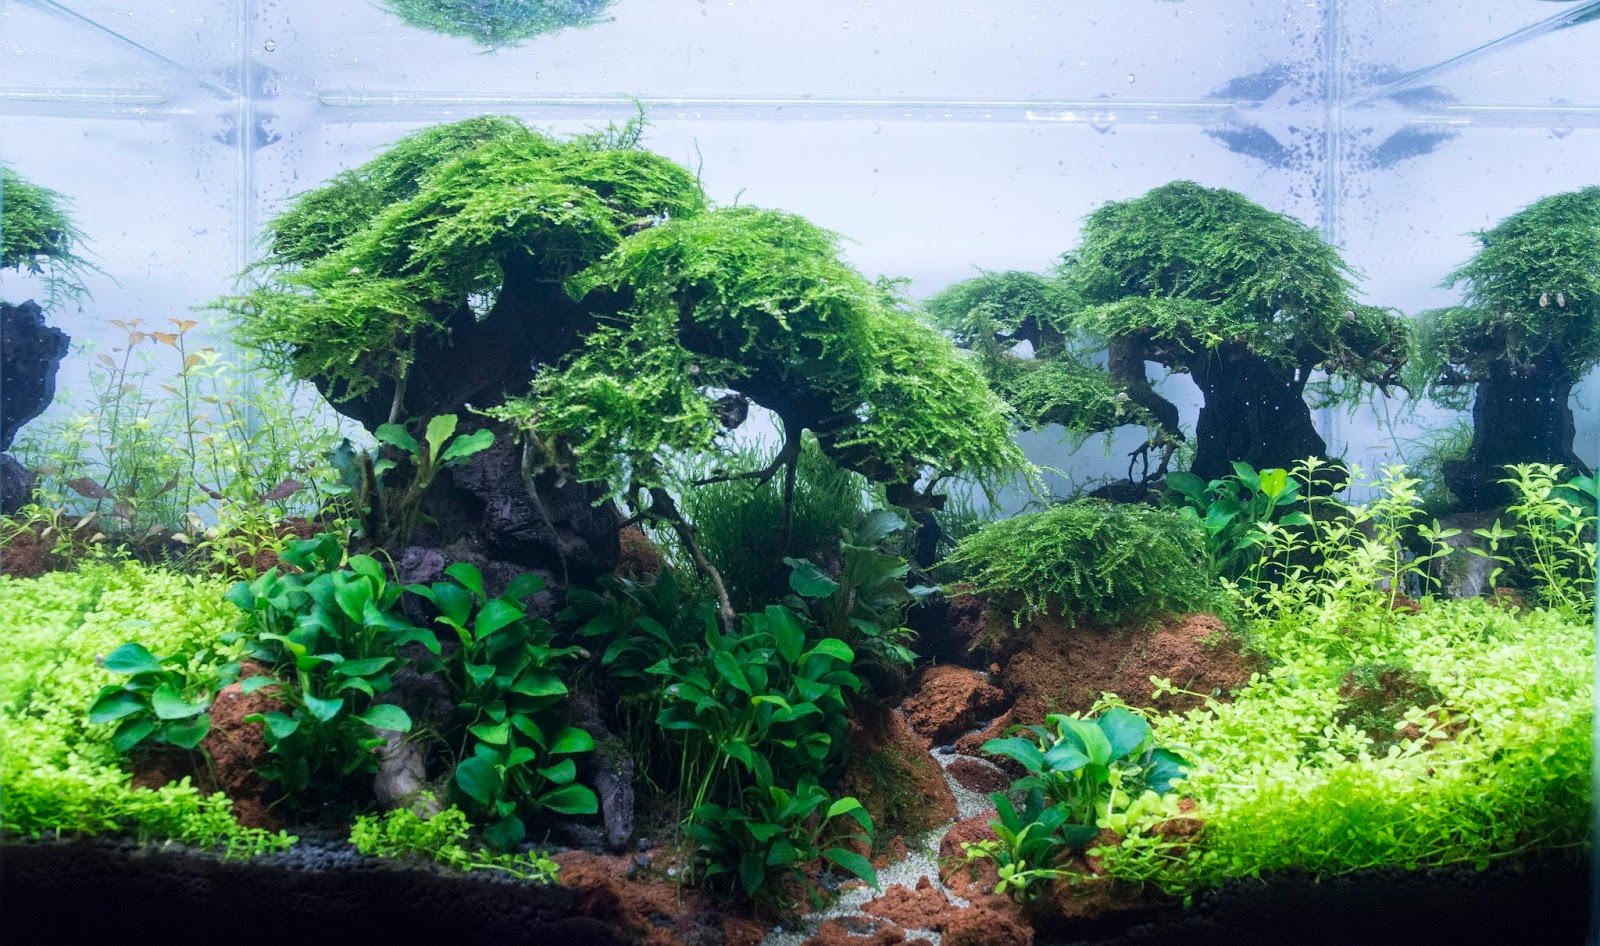 aquadesign for aquascaping enthusiasts on feedspot rss feed